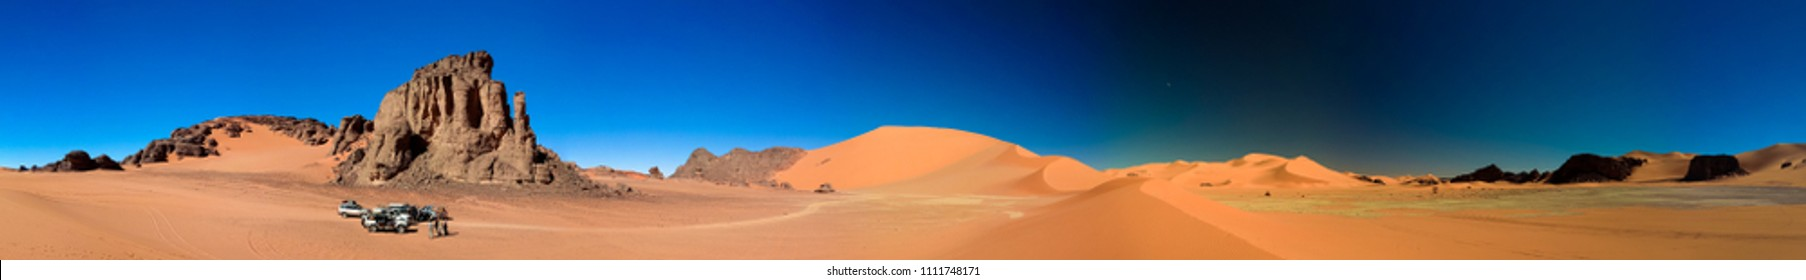 Landscape of cand dune and sundstone nature sculpture with car at Tamezguida in Tassili nAjjer national park in Algeria